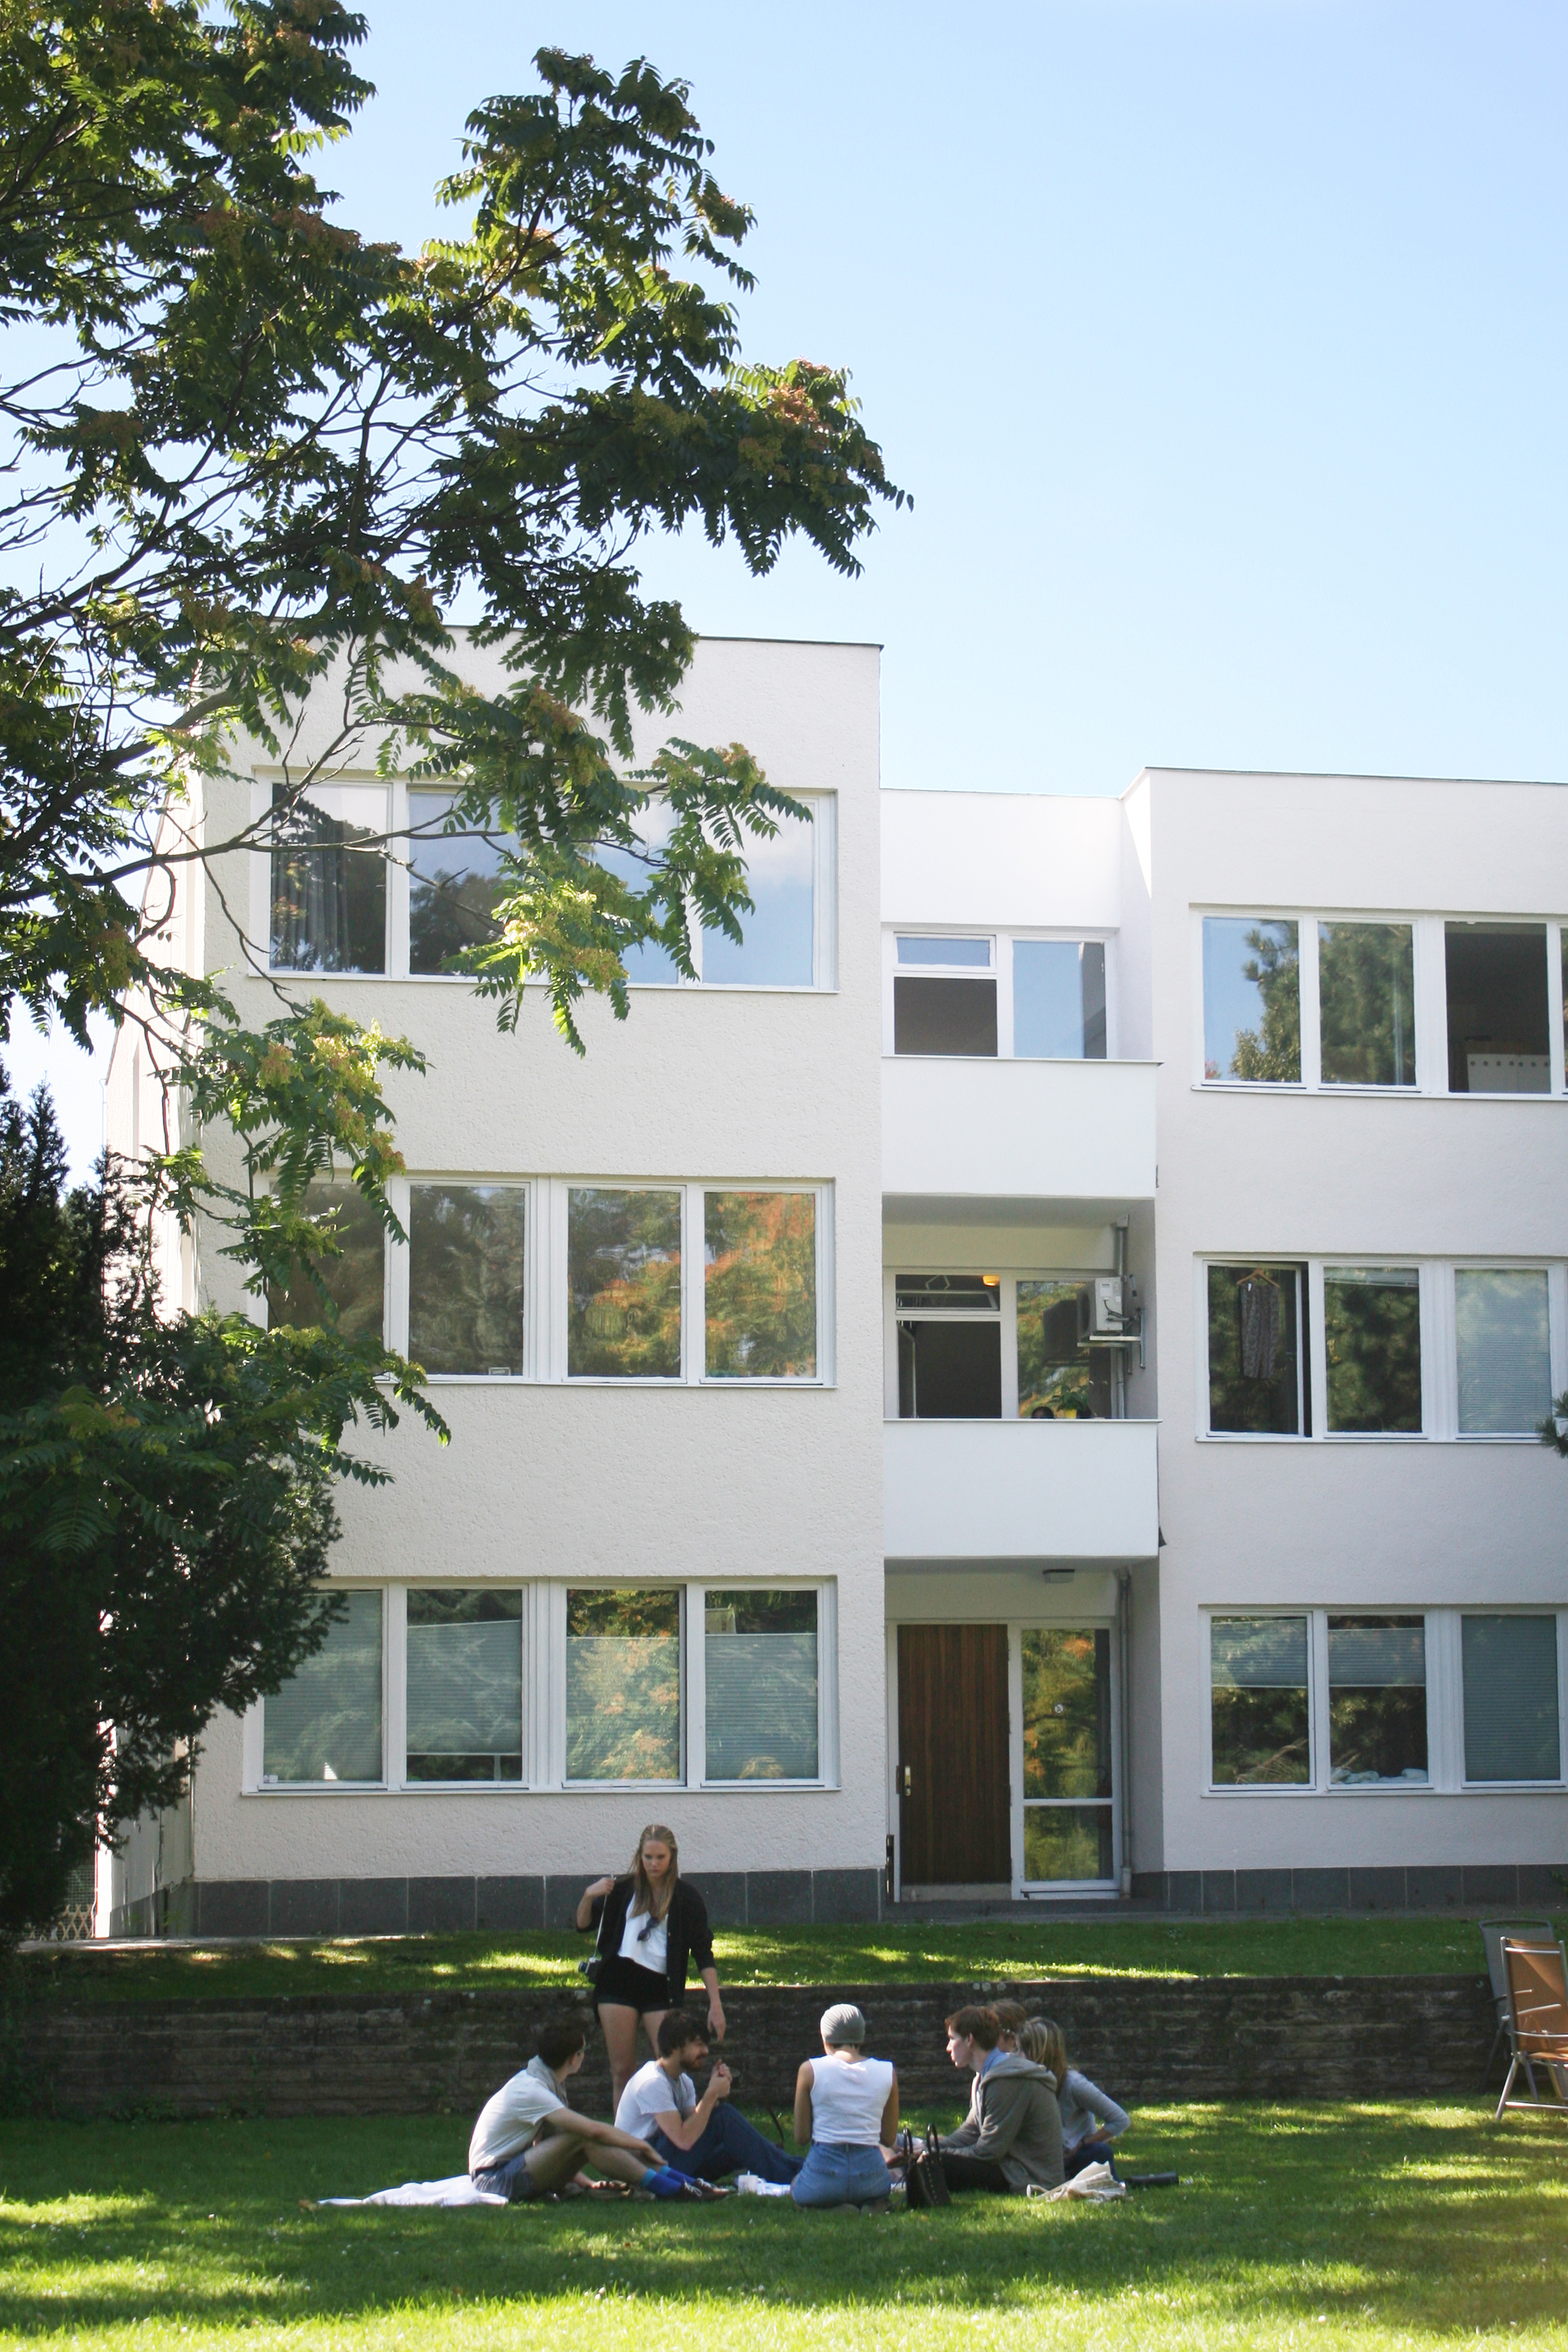 119437_Campus_InasaBibic.jpg